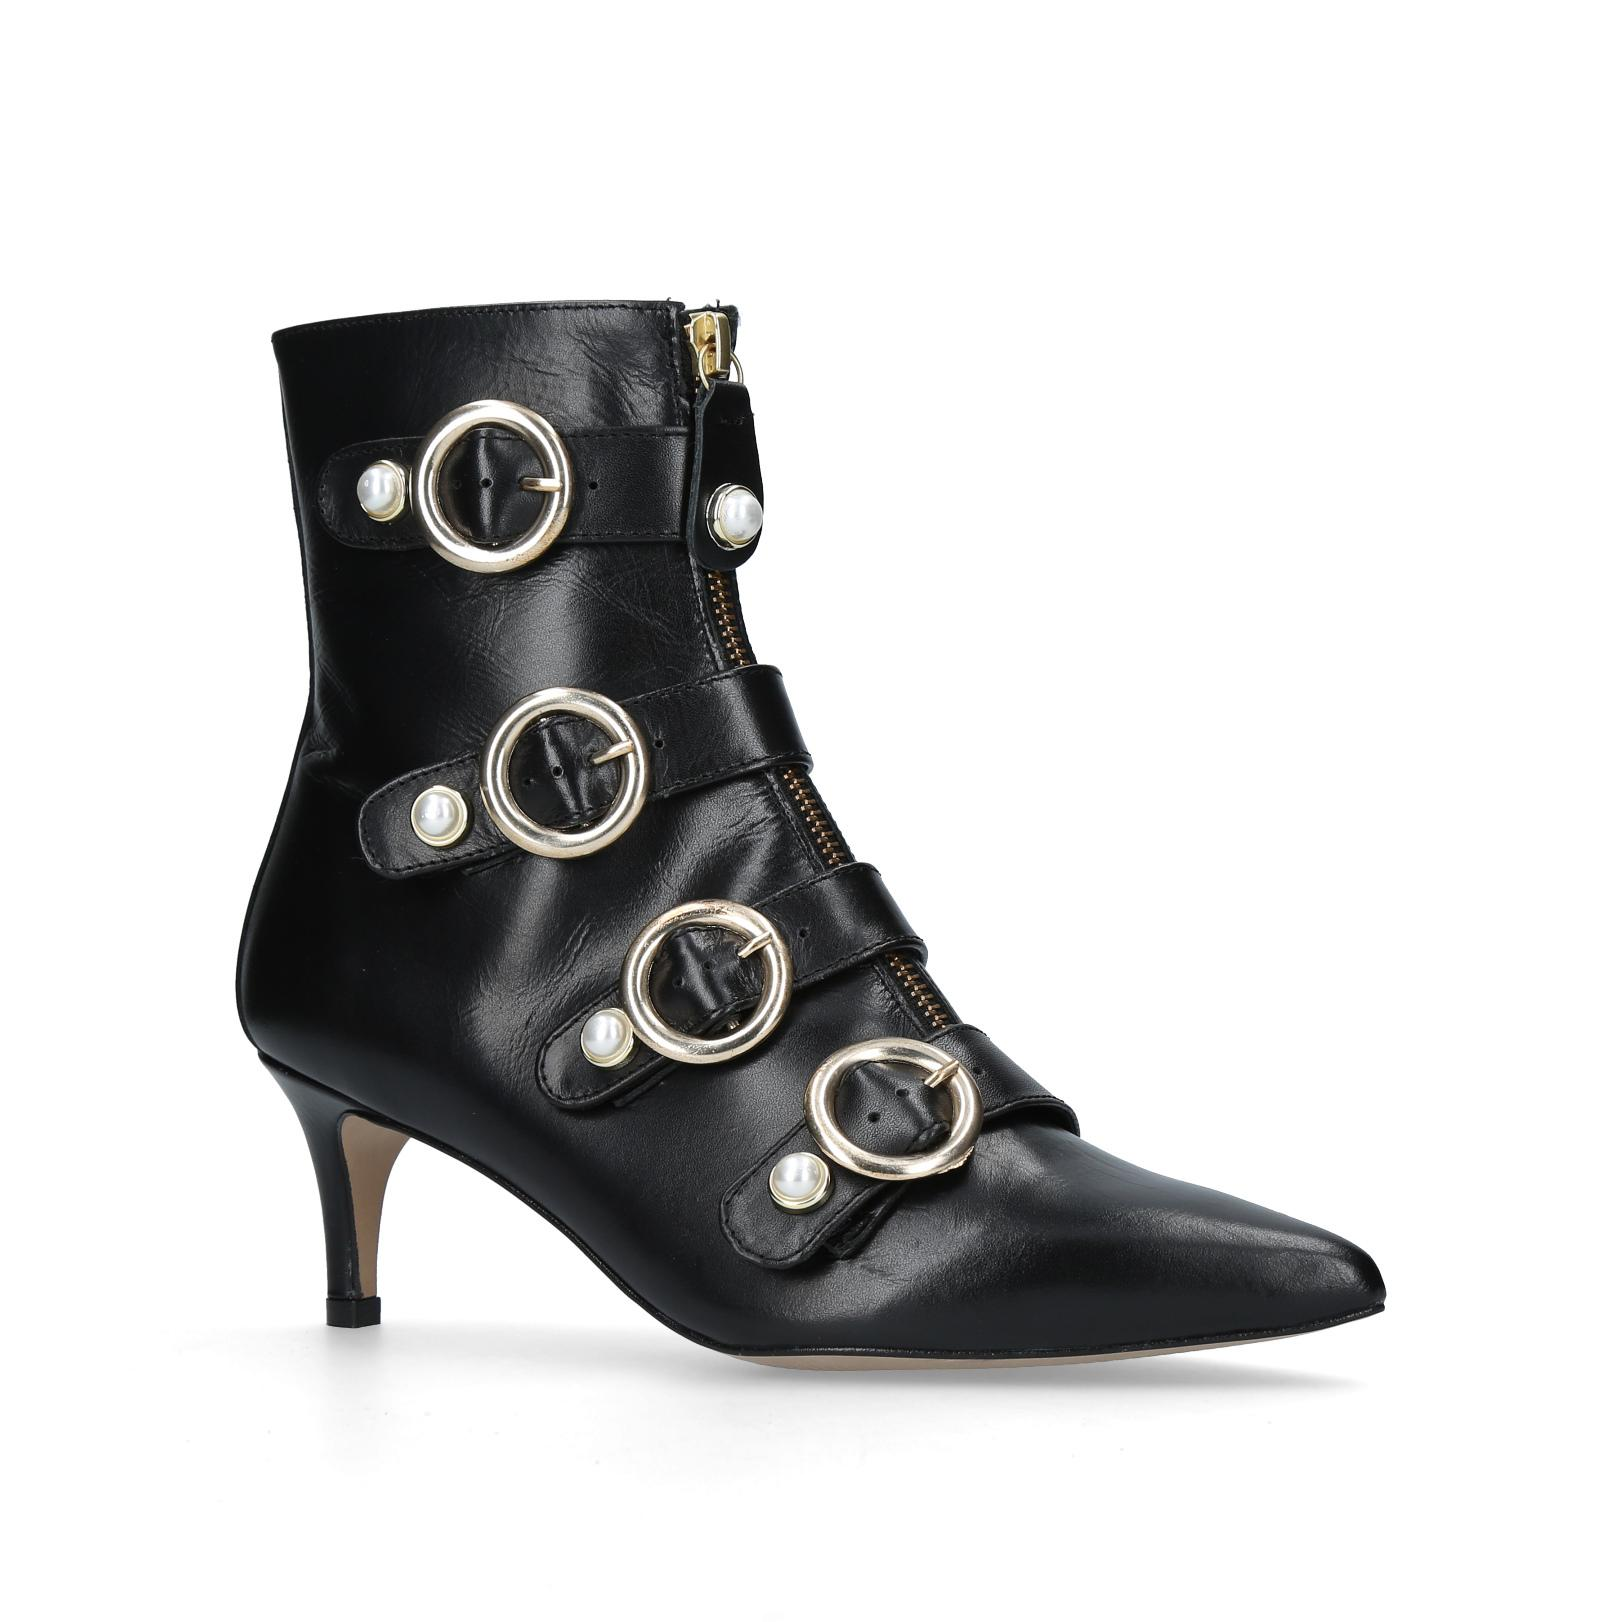 d9ed47f18be2 Carvela Kurt Geiger. Women s Black Sparky Pearl Detail Leather Kitten Heel  Ankle Boots